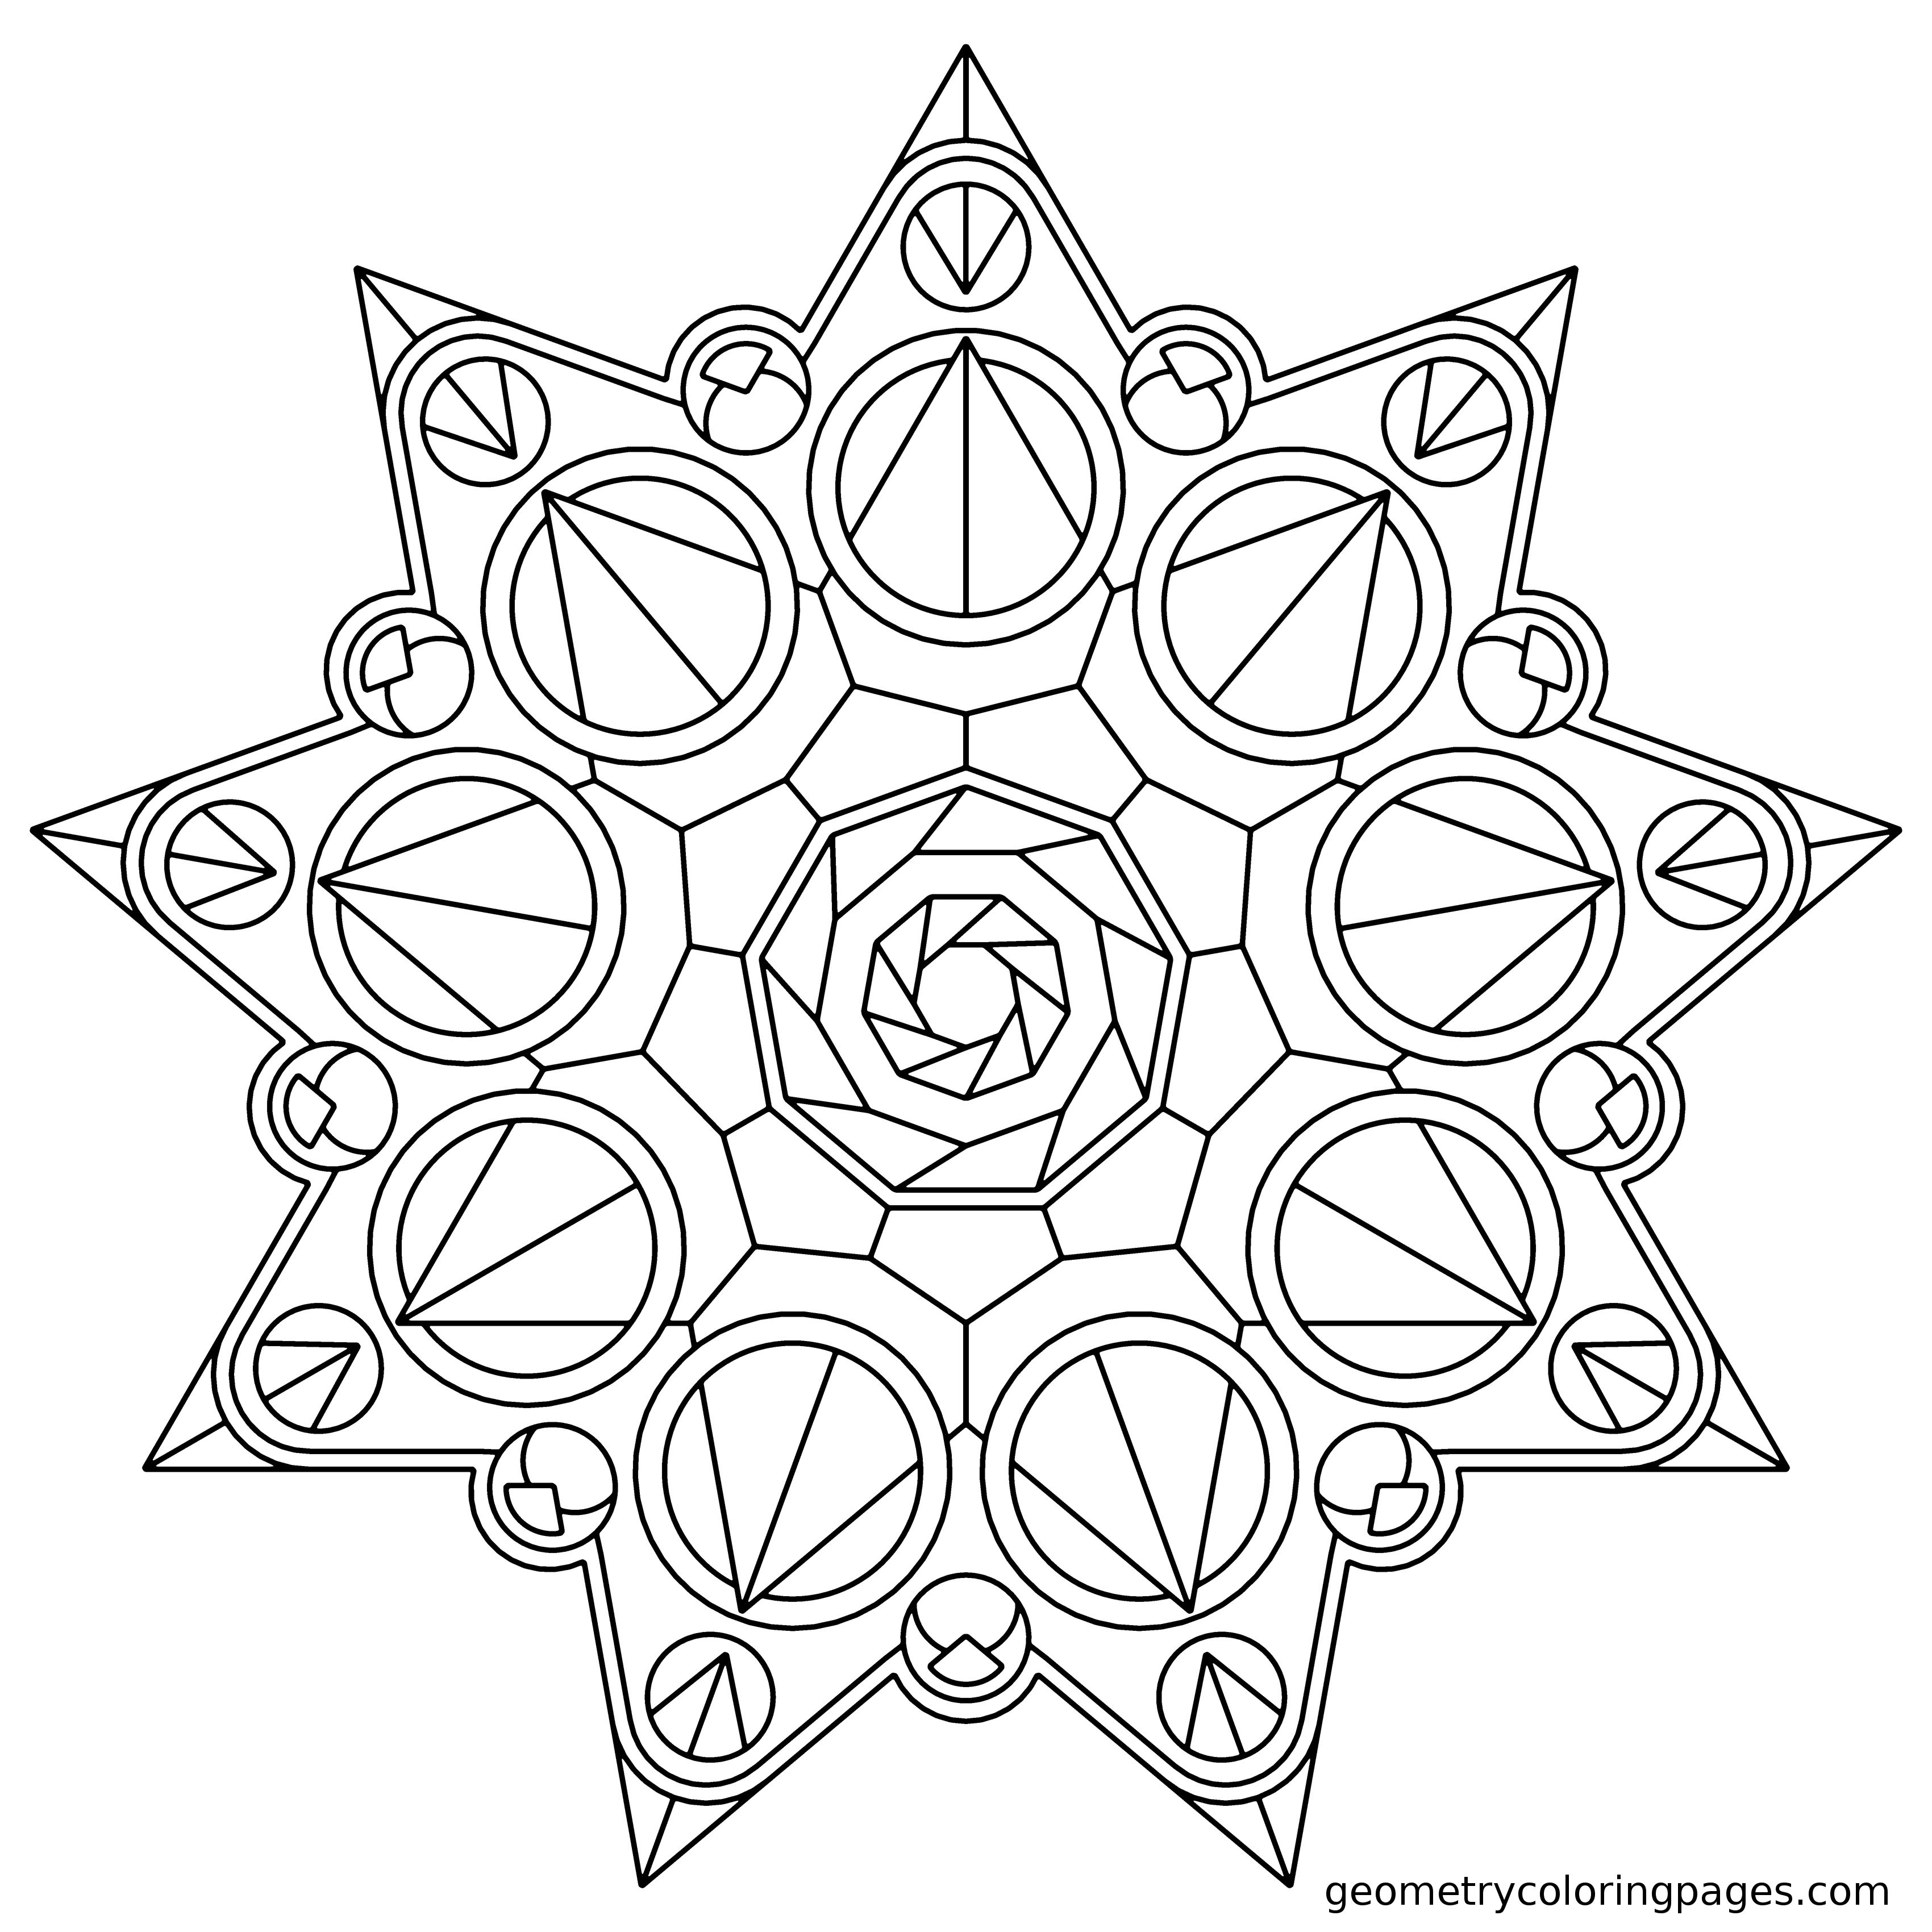 Mandala Coloring Page, Crown Star from